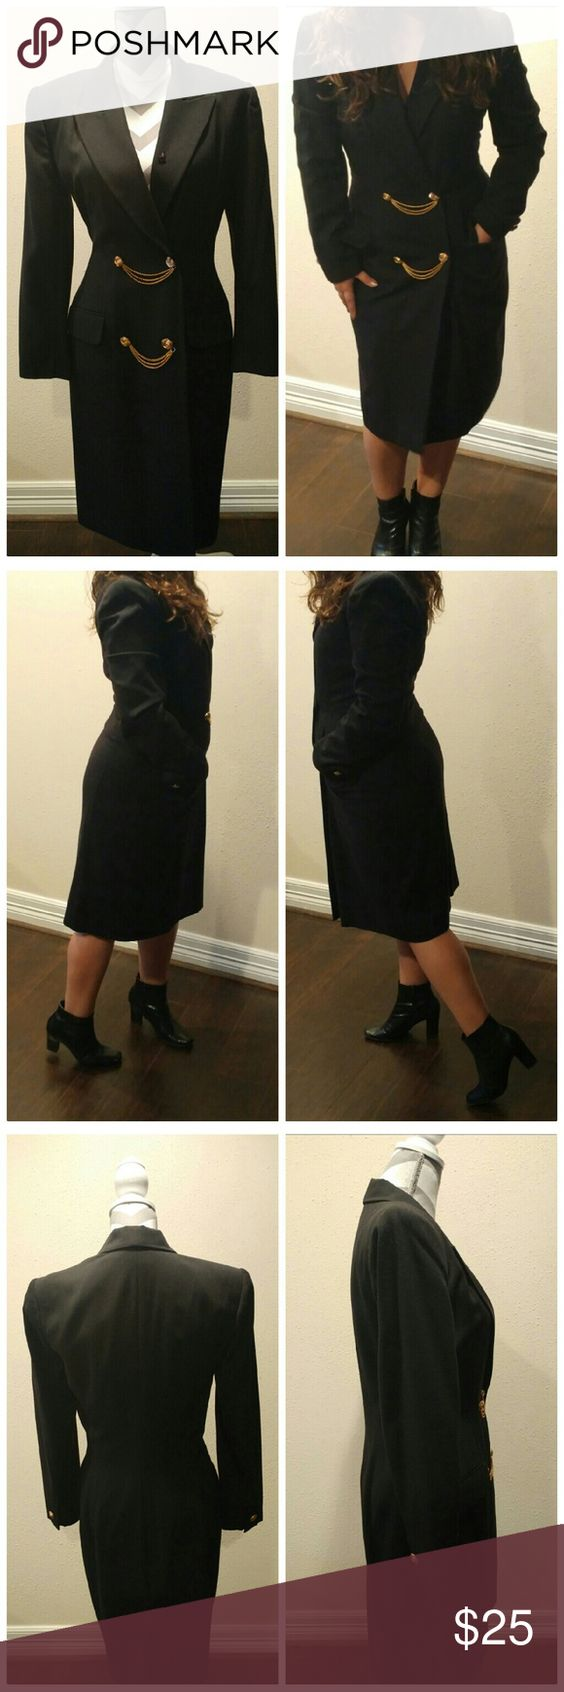 """Dress with breasted pockets/long jacket Vintage piece with doubled breasted pockets, brass hardware that adds a wow factor. Shoulder pads, fitted, no stretch. Fully lined. Size 8. I'm modeling the piece and I'm 5'1"""" for reference. I typically wear 8-10. This dress can also be worn as a long jacket...one more reason to add this piece to your wardrobe! Measurements shoulder to shoulder approx 16"""", waist 32"""", hips 39"""". Kasper Dresses Long Sleeve"""